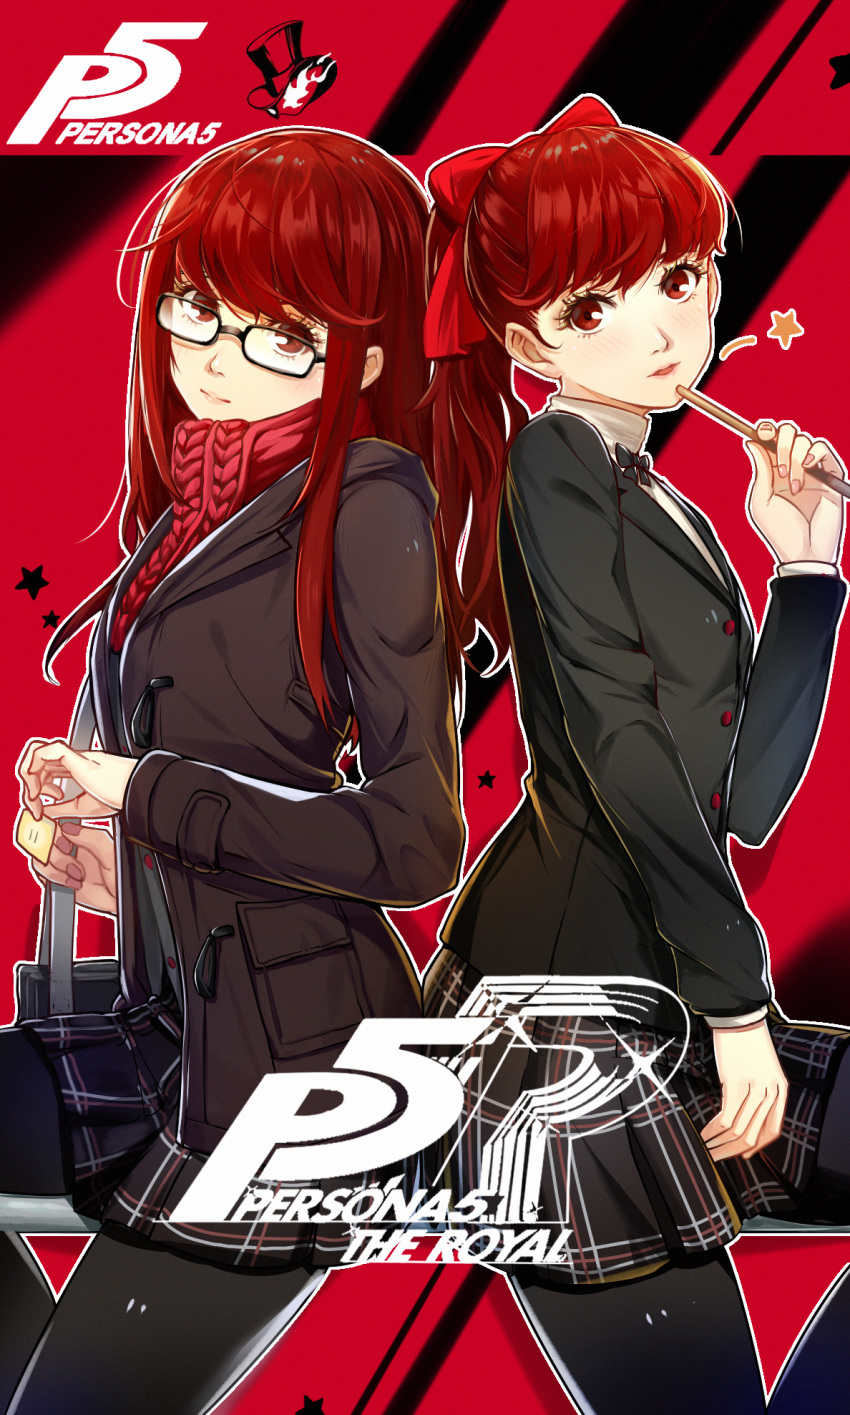 1girl alternate_hairstyle atlus bag black_bow black_jacket blush bow buttons closed_mouth commentary_request cute dual_persona glasses hair_between_eyes hair_bow highres holding holding_bag ijuun jacket lips logo long_hair looking_at_viewer megami_tensei open_mouth parted_lips persona persona_5 persona_5_the_royal pocket ponytail red_bow red_eyes red_scarf redhead scarf school_bag school_uniform sega shin_megami_tensei shuujin_academy_uniform skirt spoilers star thigh-highs uniform yoshizawa_kasumi